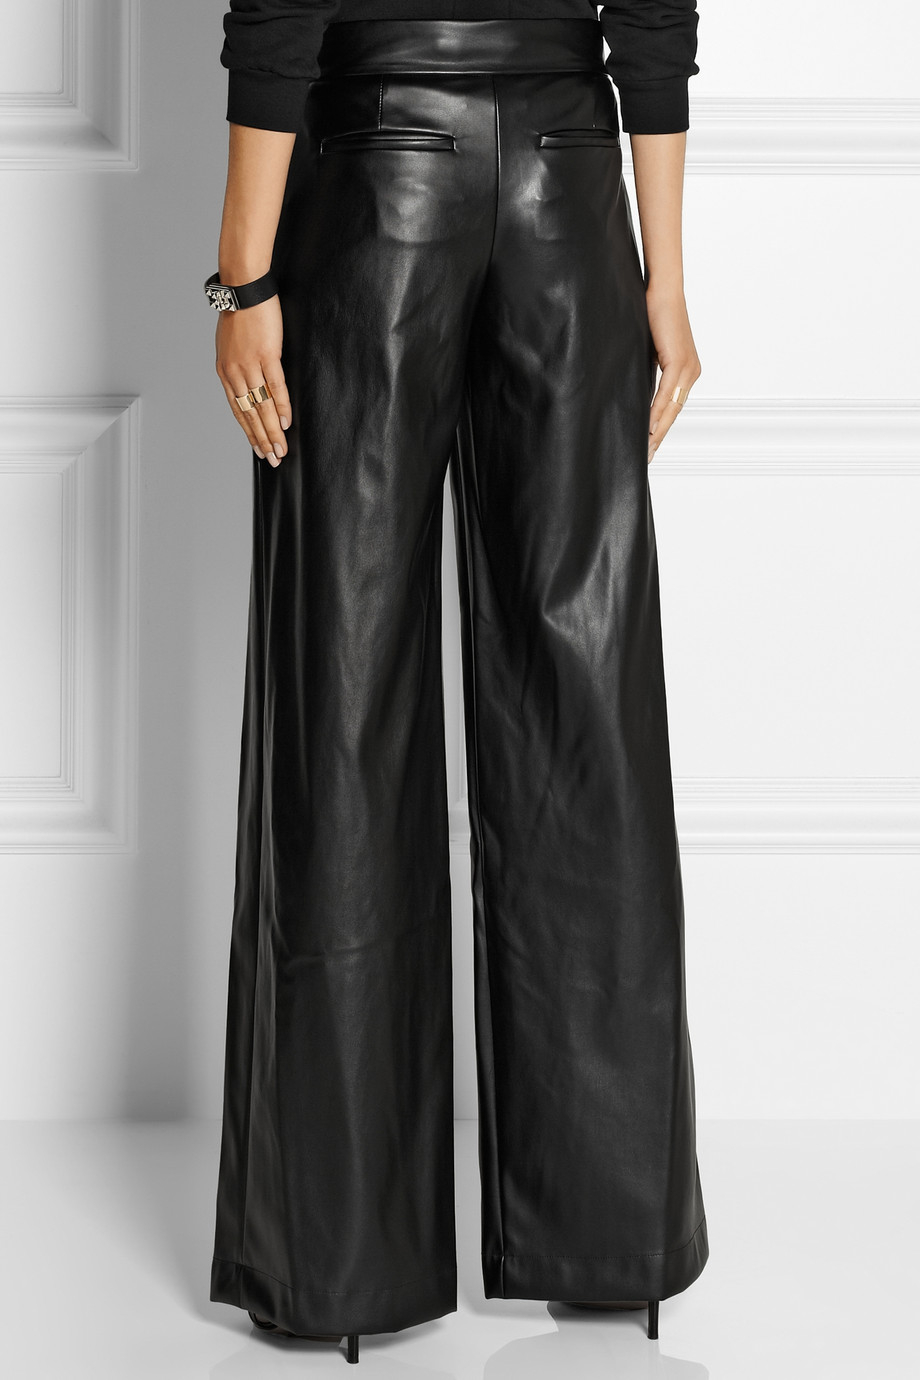 Dkny Faux Leather Wide-Leg Pants in Black | Lyst